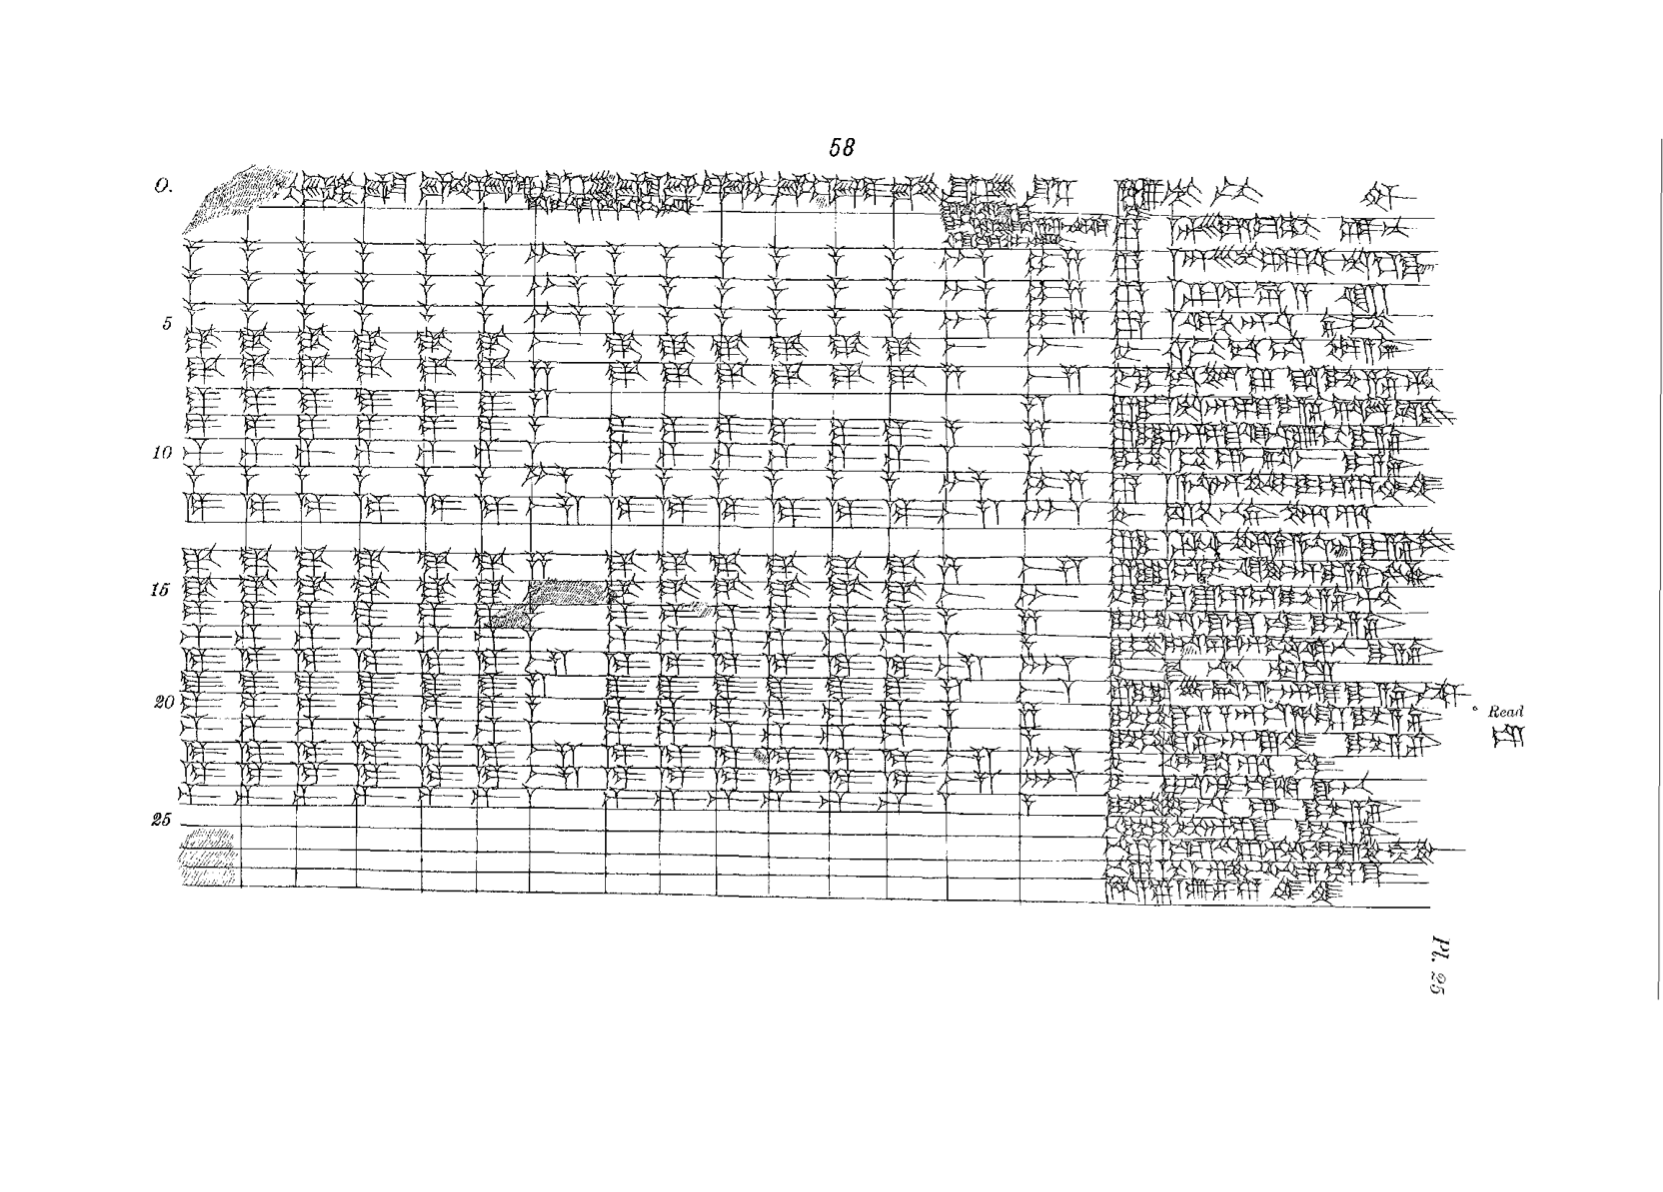 Line drawing of a tablet with lines dividing it into many rows and columns. The rightmost column is wider than the rest and contains many characters in each cell. The other cells contain one or a few characters, with a few cells empty.